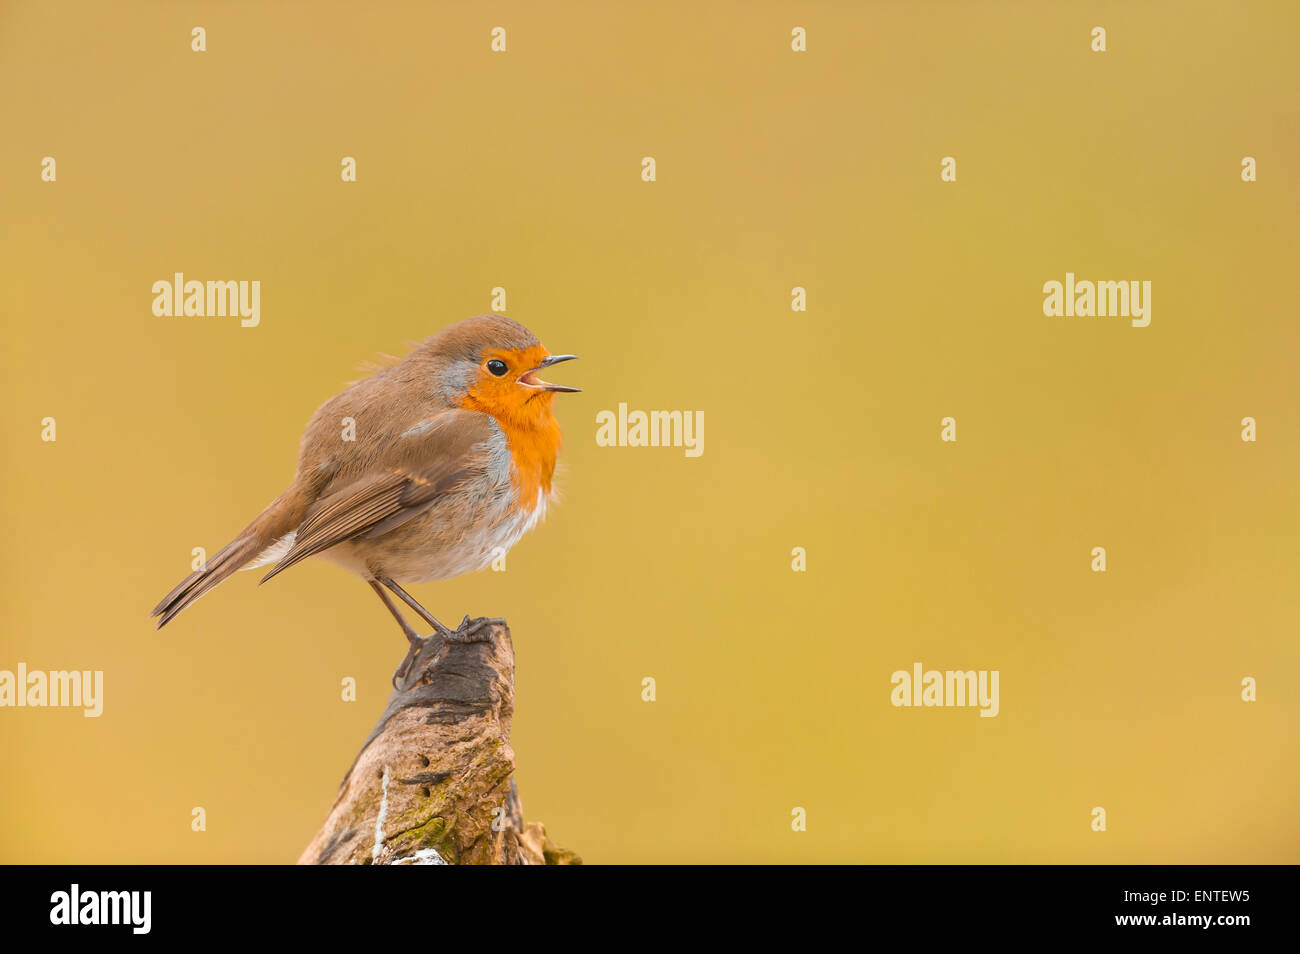 Close up portrait of a little Robin bird (Erithacus rubecula) singing in a garden, UK - Stock Image